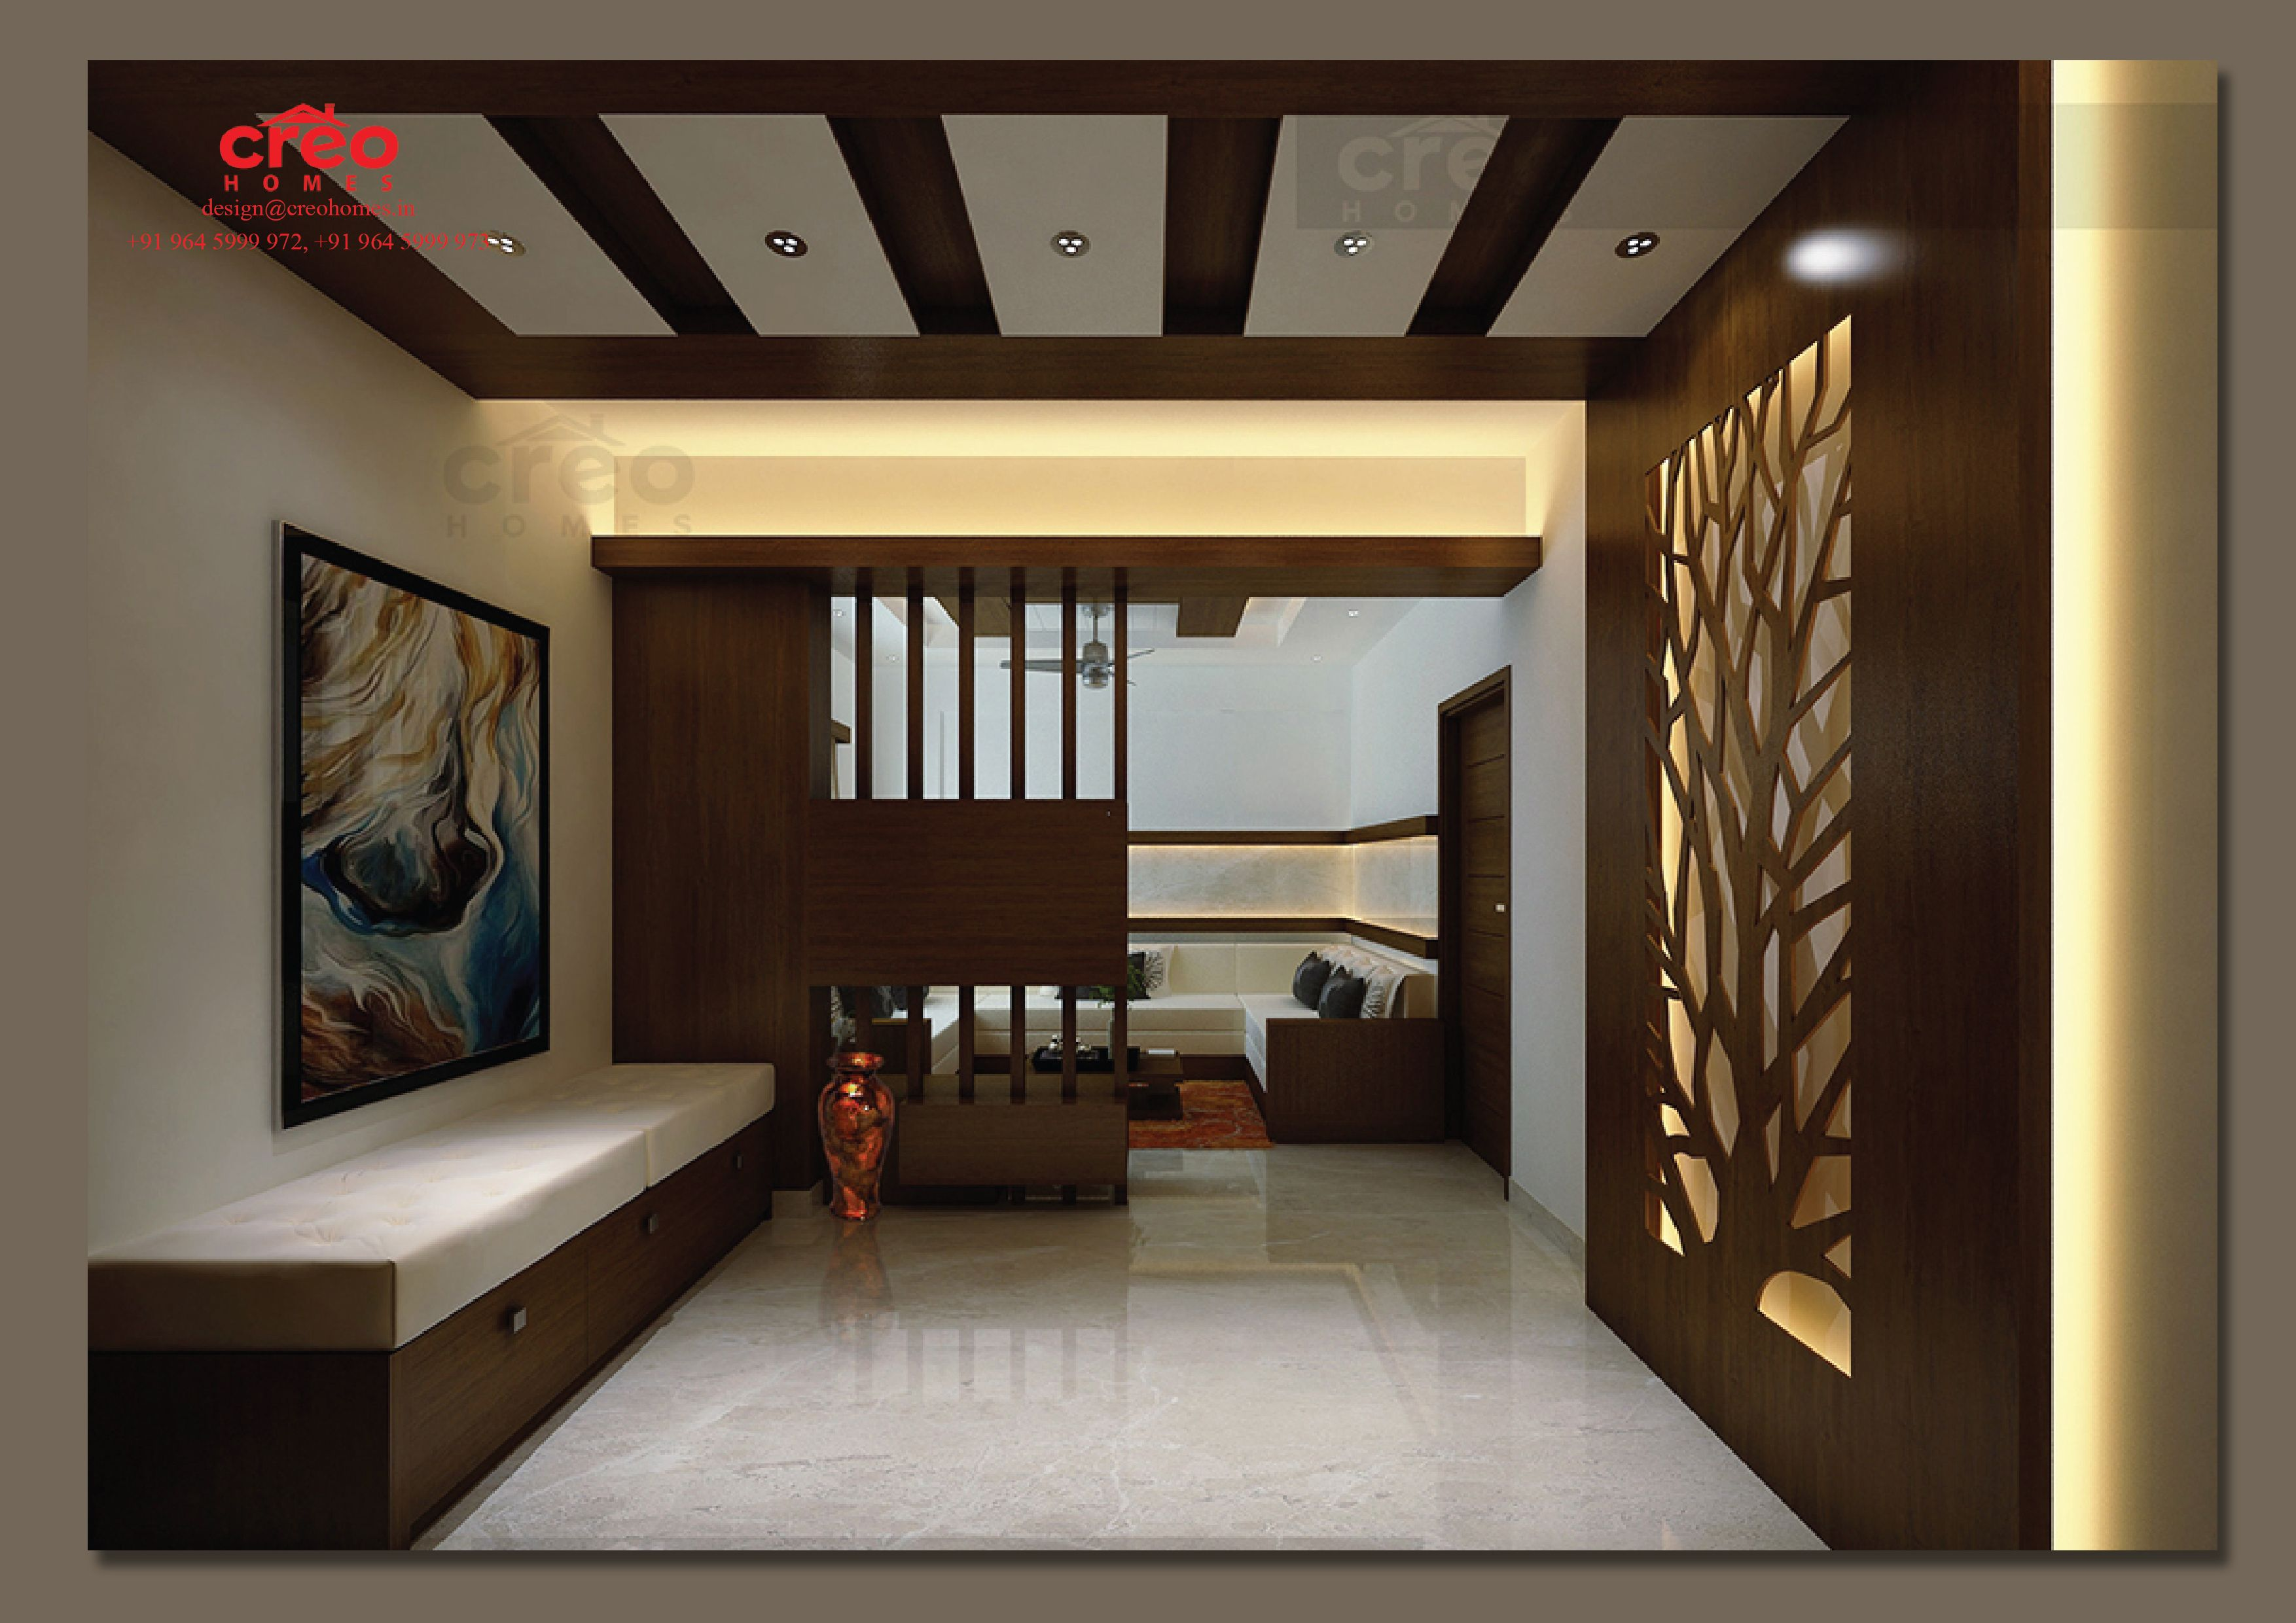 Creo Homes Helps You Build A Beautiful Home That Matches